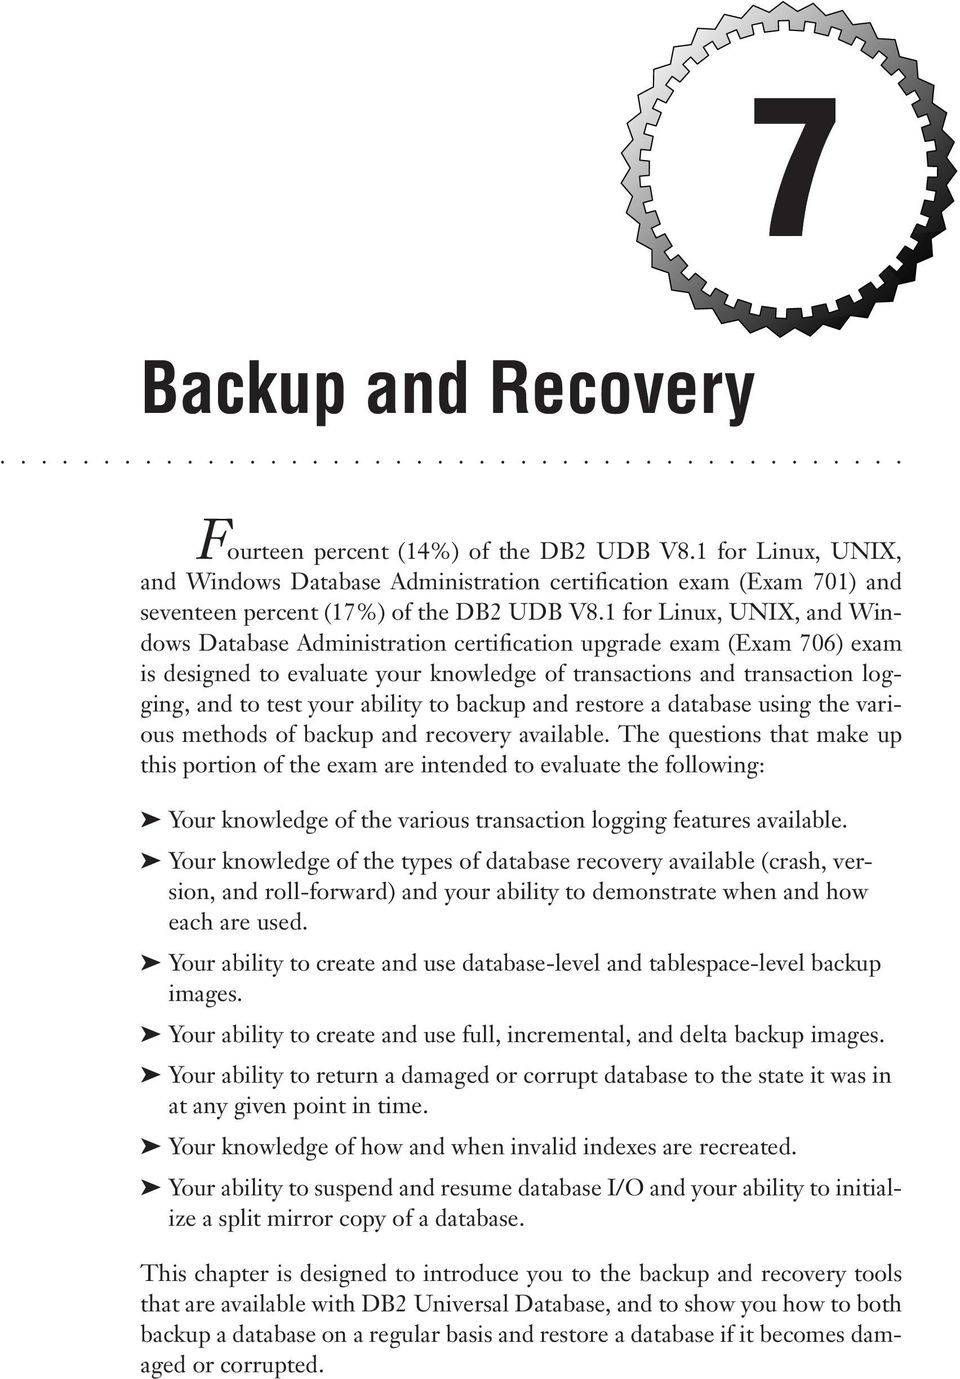 ability to backup and restore a database using the various methods of backup and recovery available.